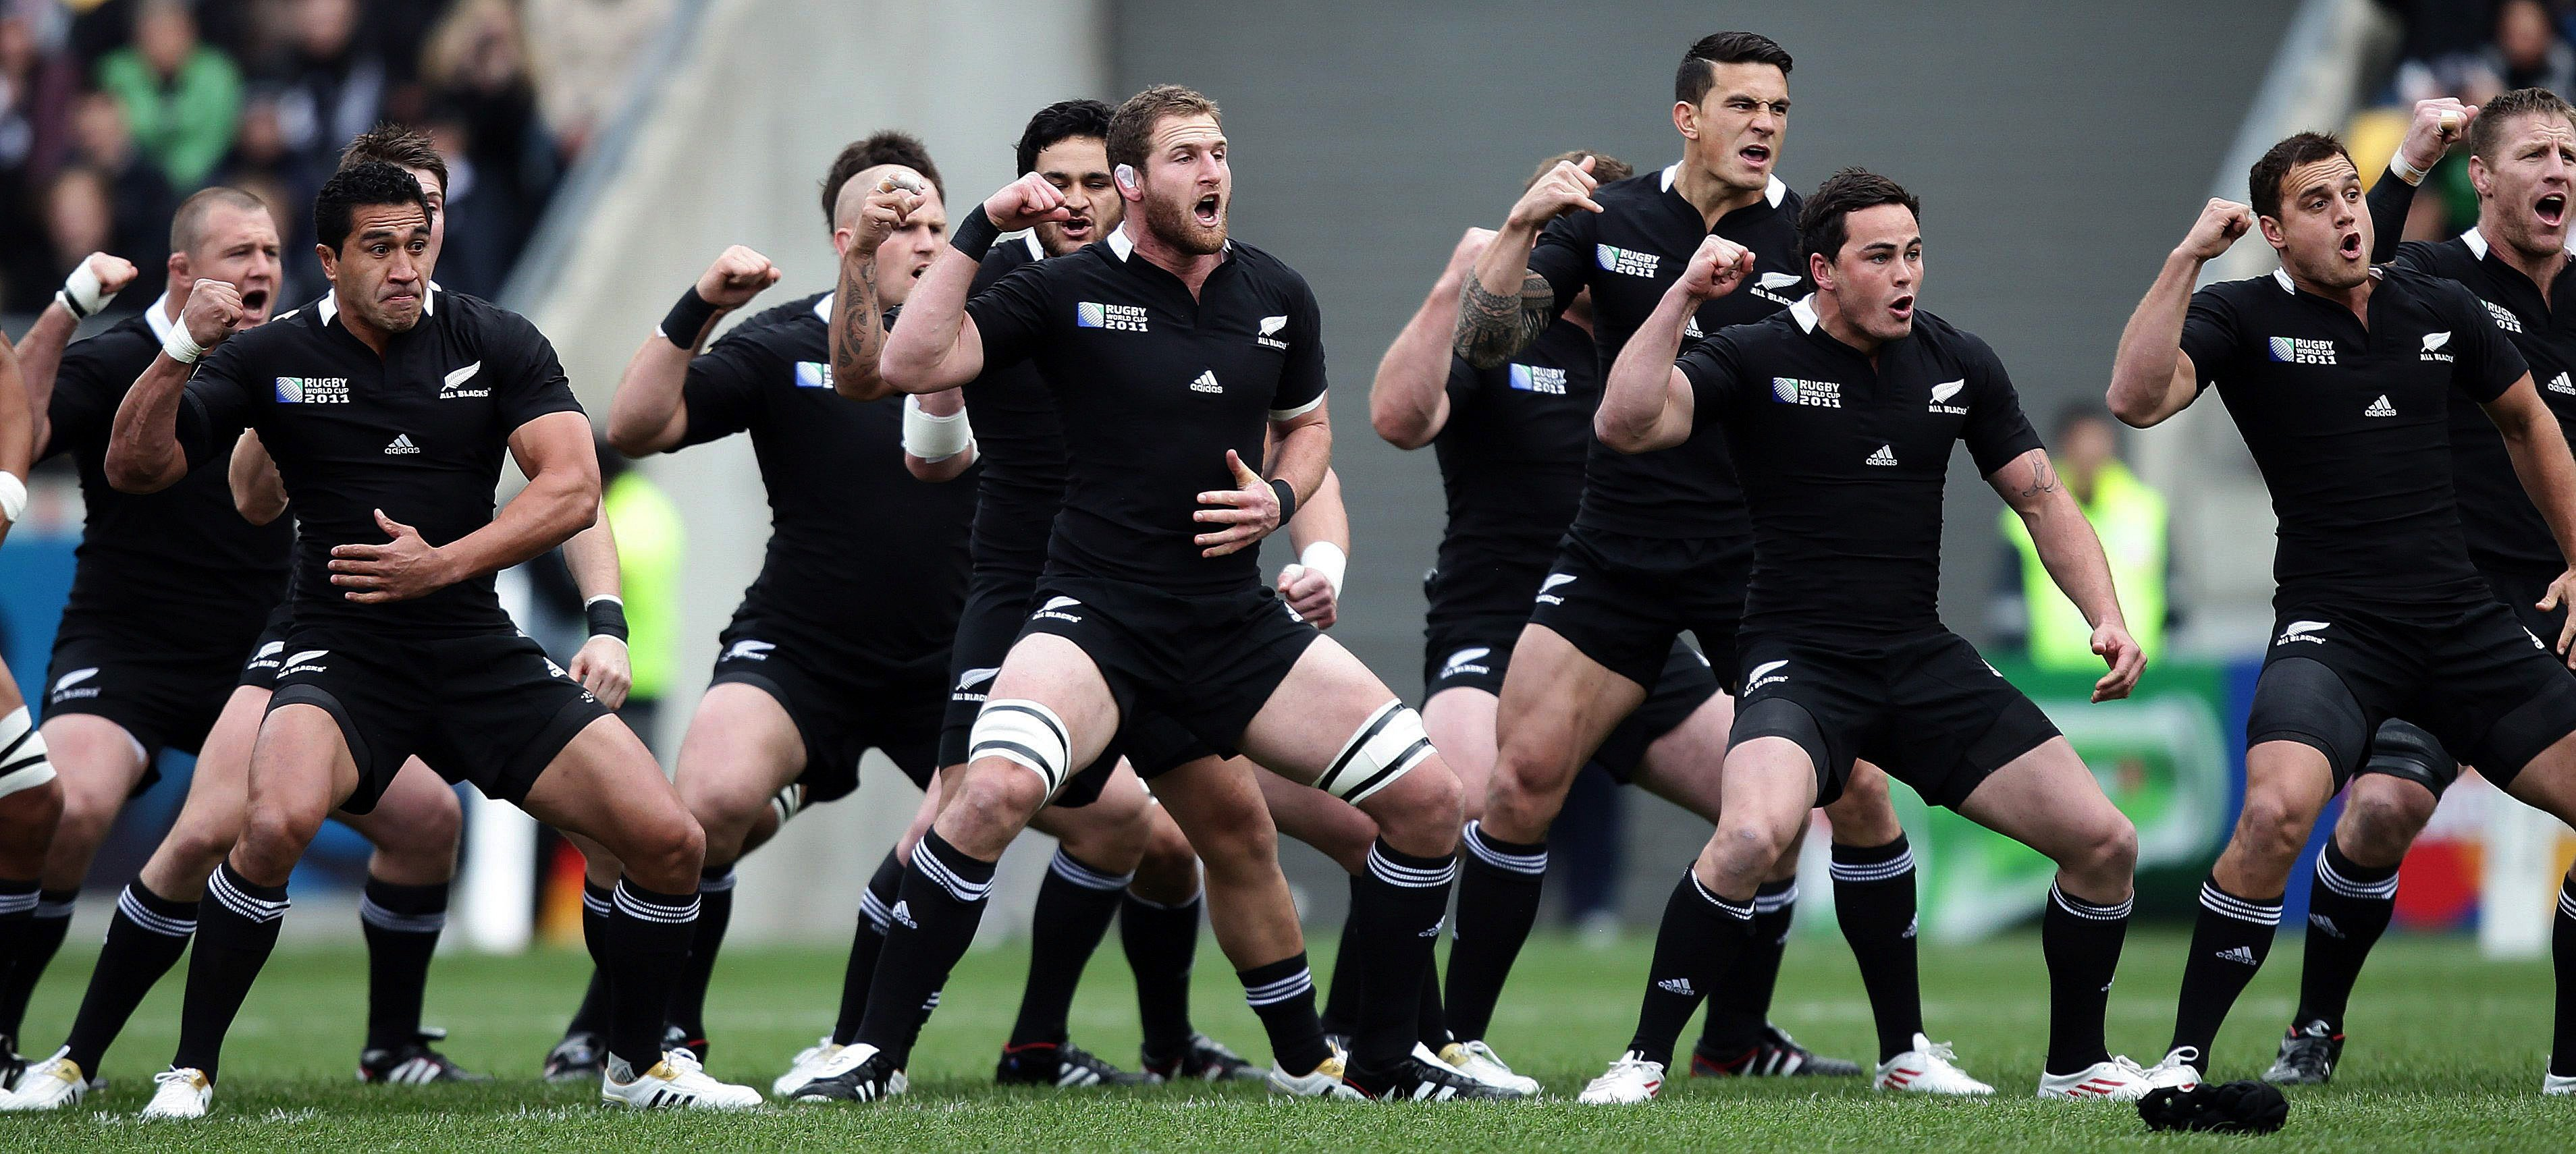 All Blacks Nova Zelanda rugbi Efe